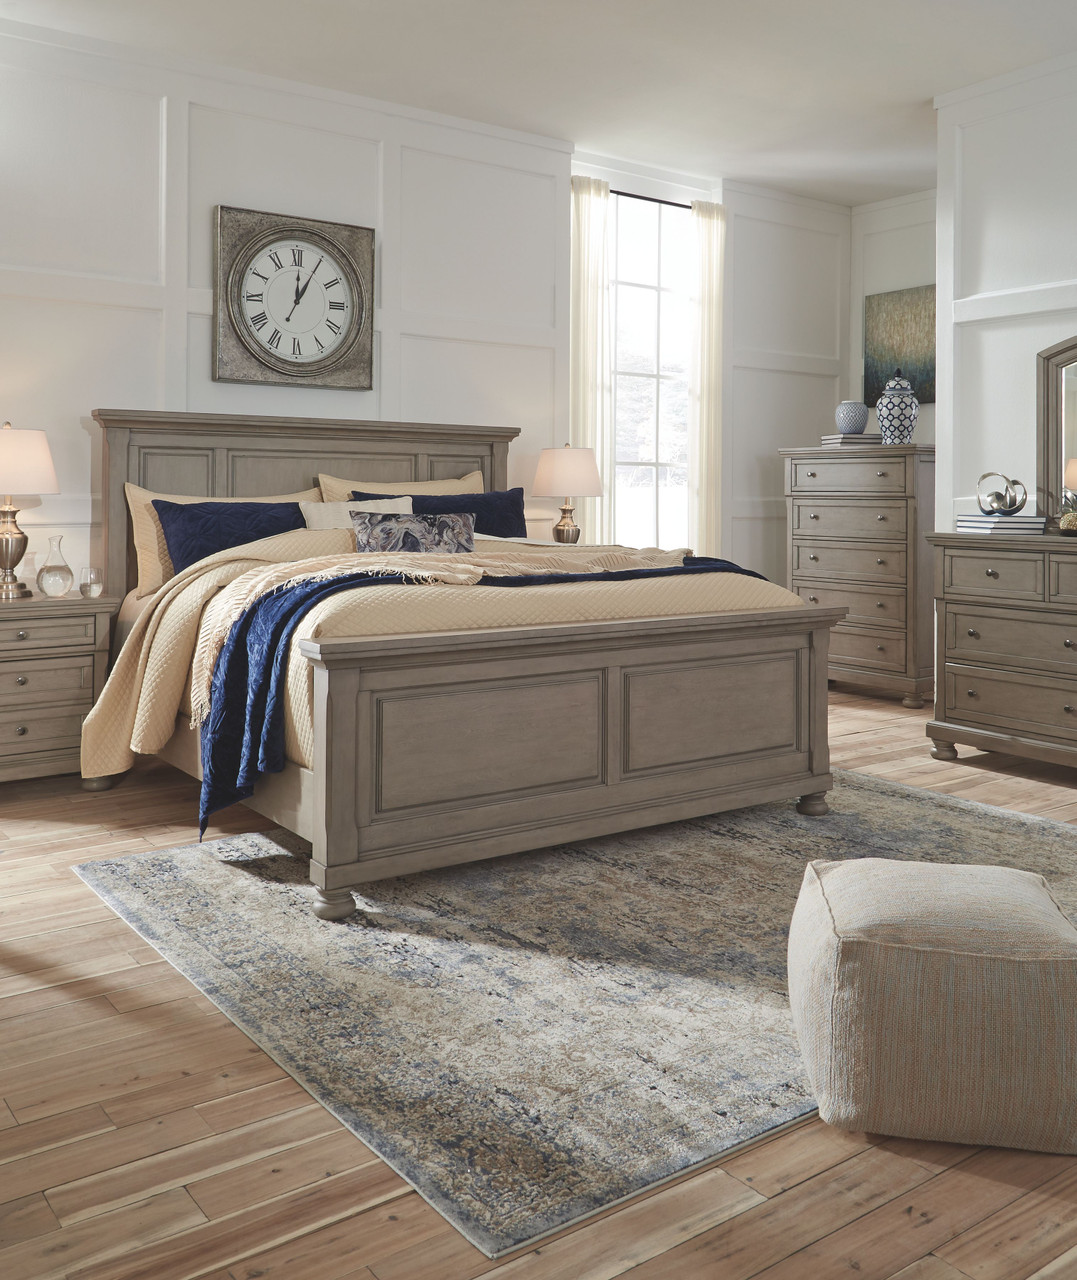 The Lettner Light Gray 5 Pc Dresser Mirror King Panel Bed Available At Bitney S Furniture And Mattress Company Serving Kalispell Mt